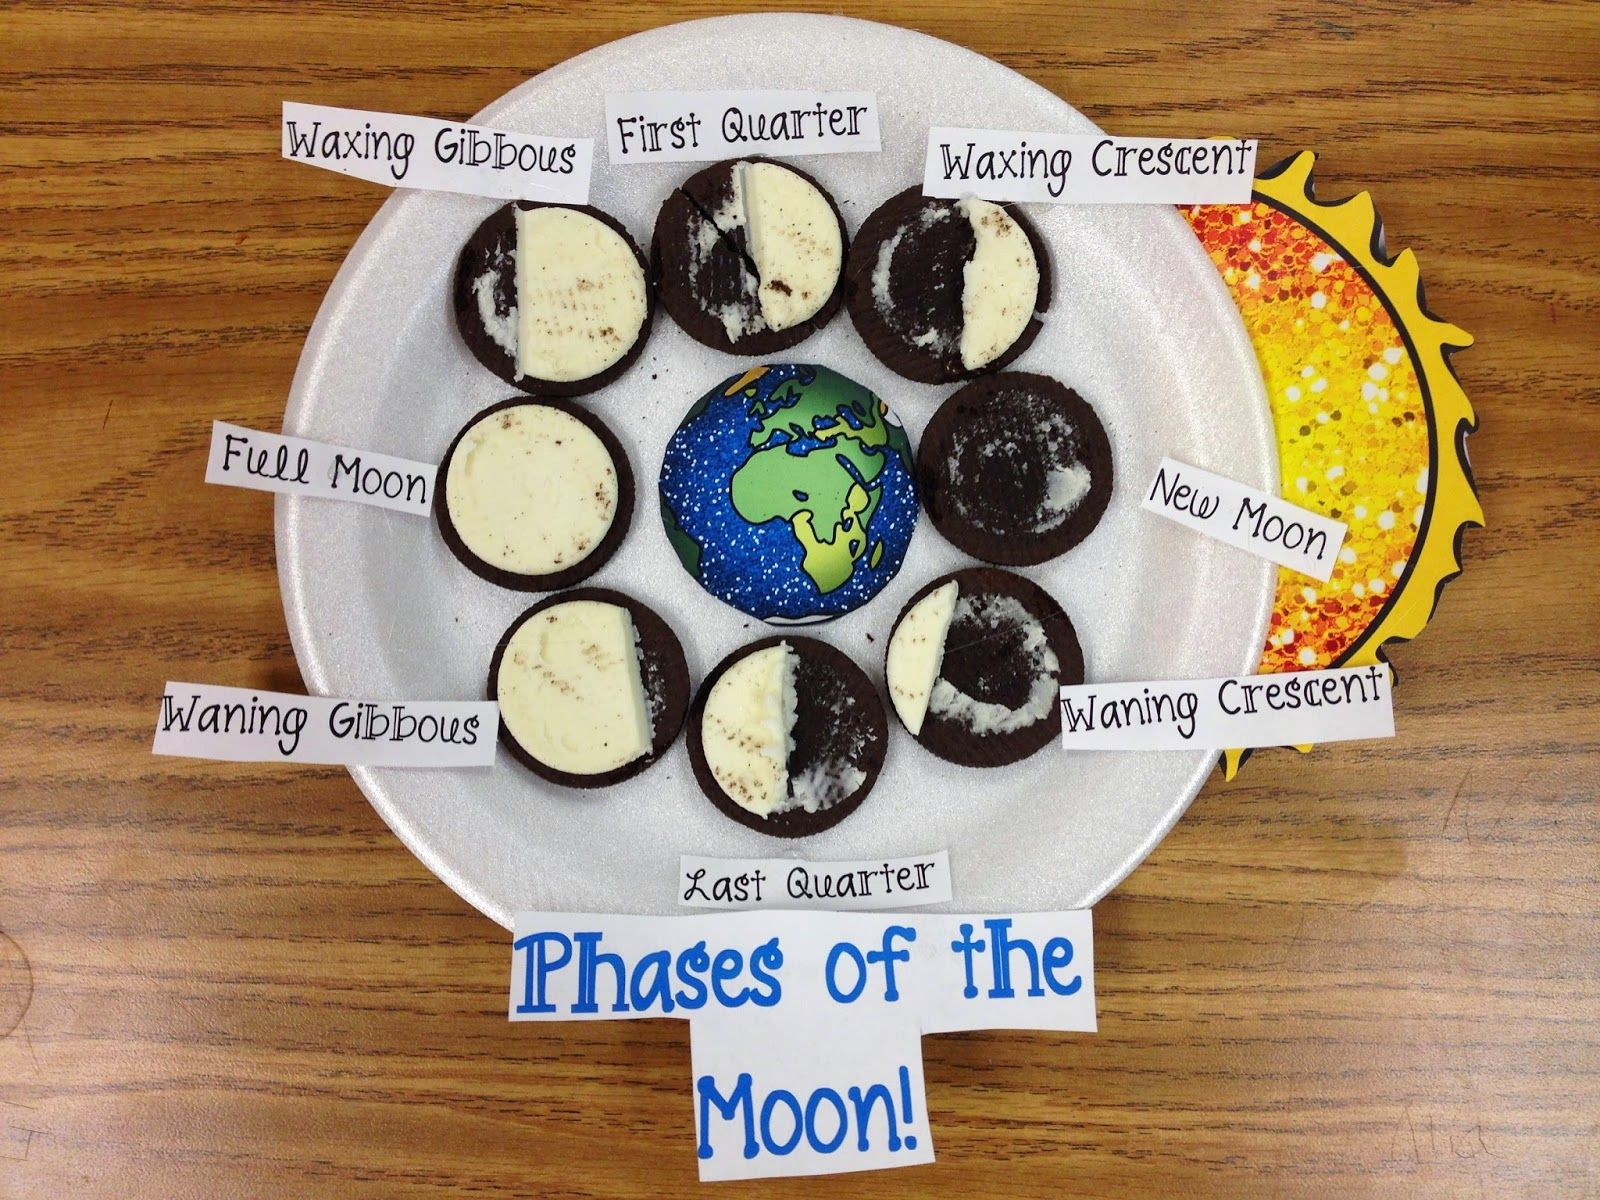 Phases Of The Moon With Oreo Cookies